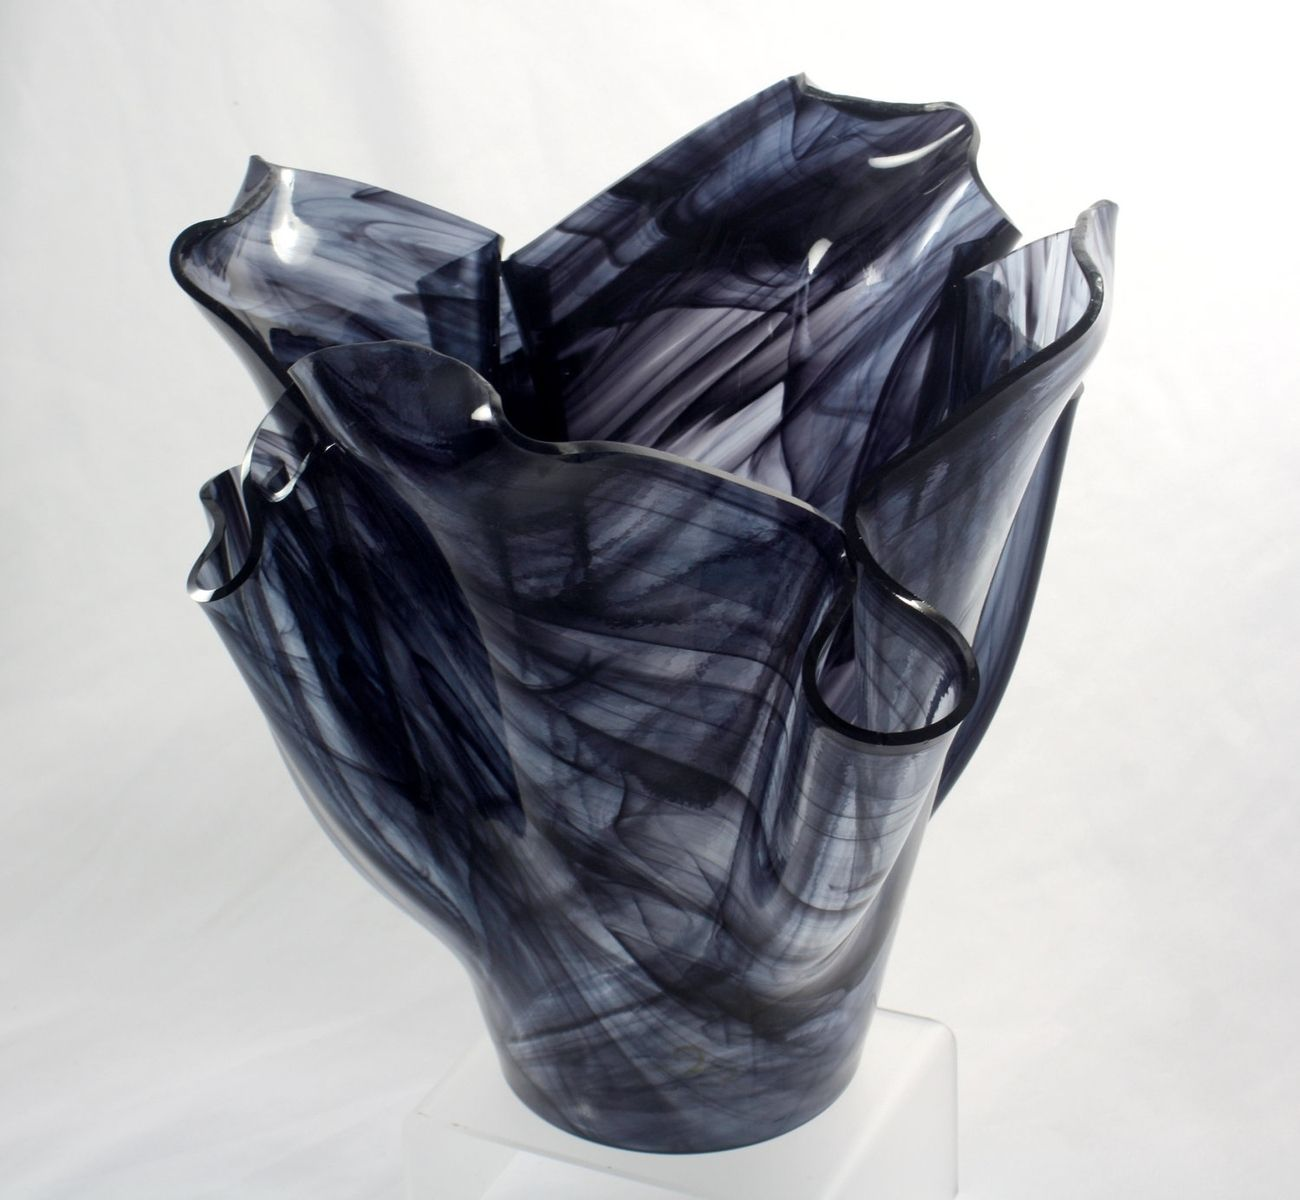 Buy a custom wispy black fused glass vase made to order from jm custom made wispy black fused glass vase reviewsmspy